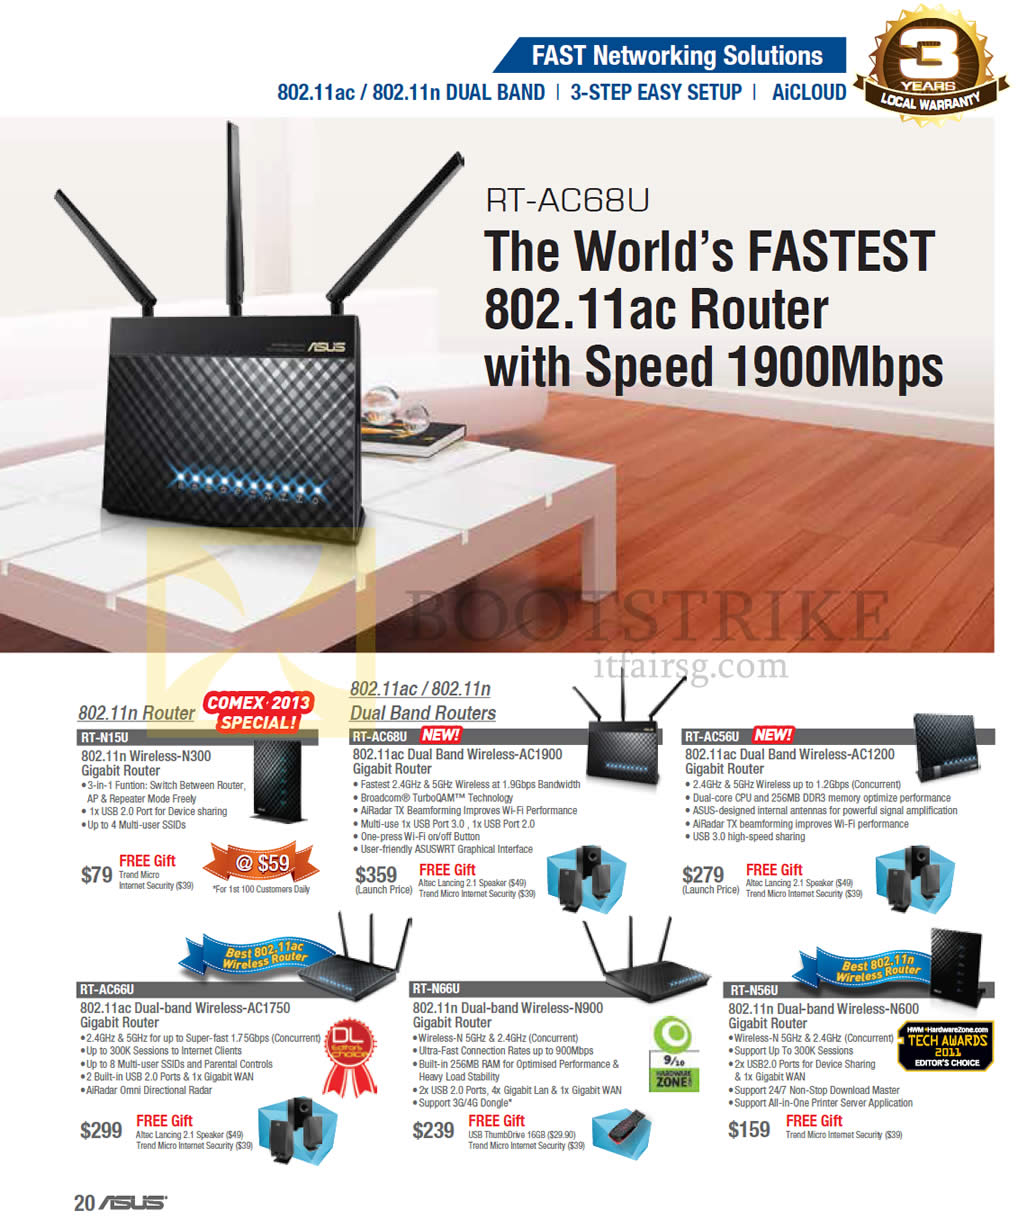 COMEX 2013 price list image brochure of ASUS Networking Routers RT-N15U, RT-AC68U, RT-AC56U, RT-AC66U, RT-N66U, RT-N56U